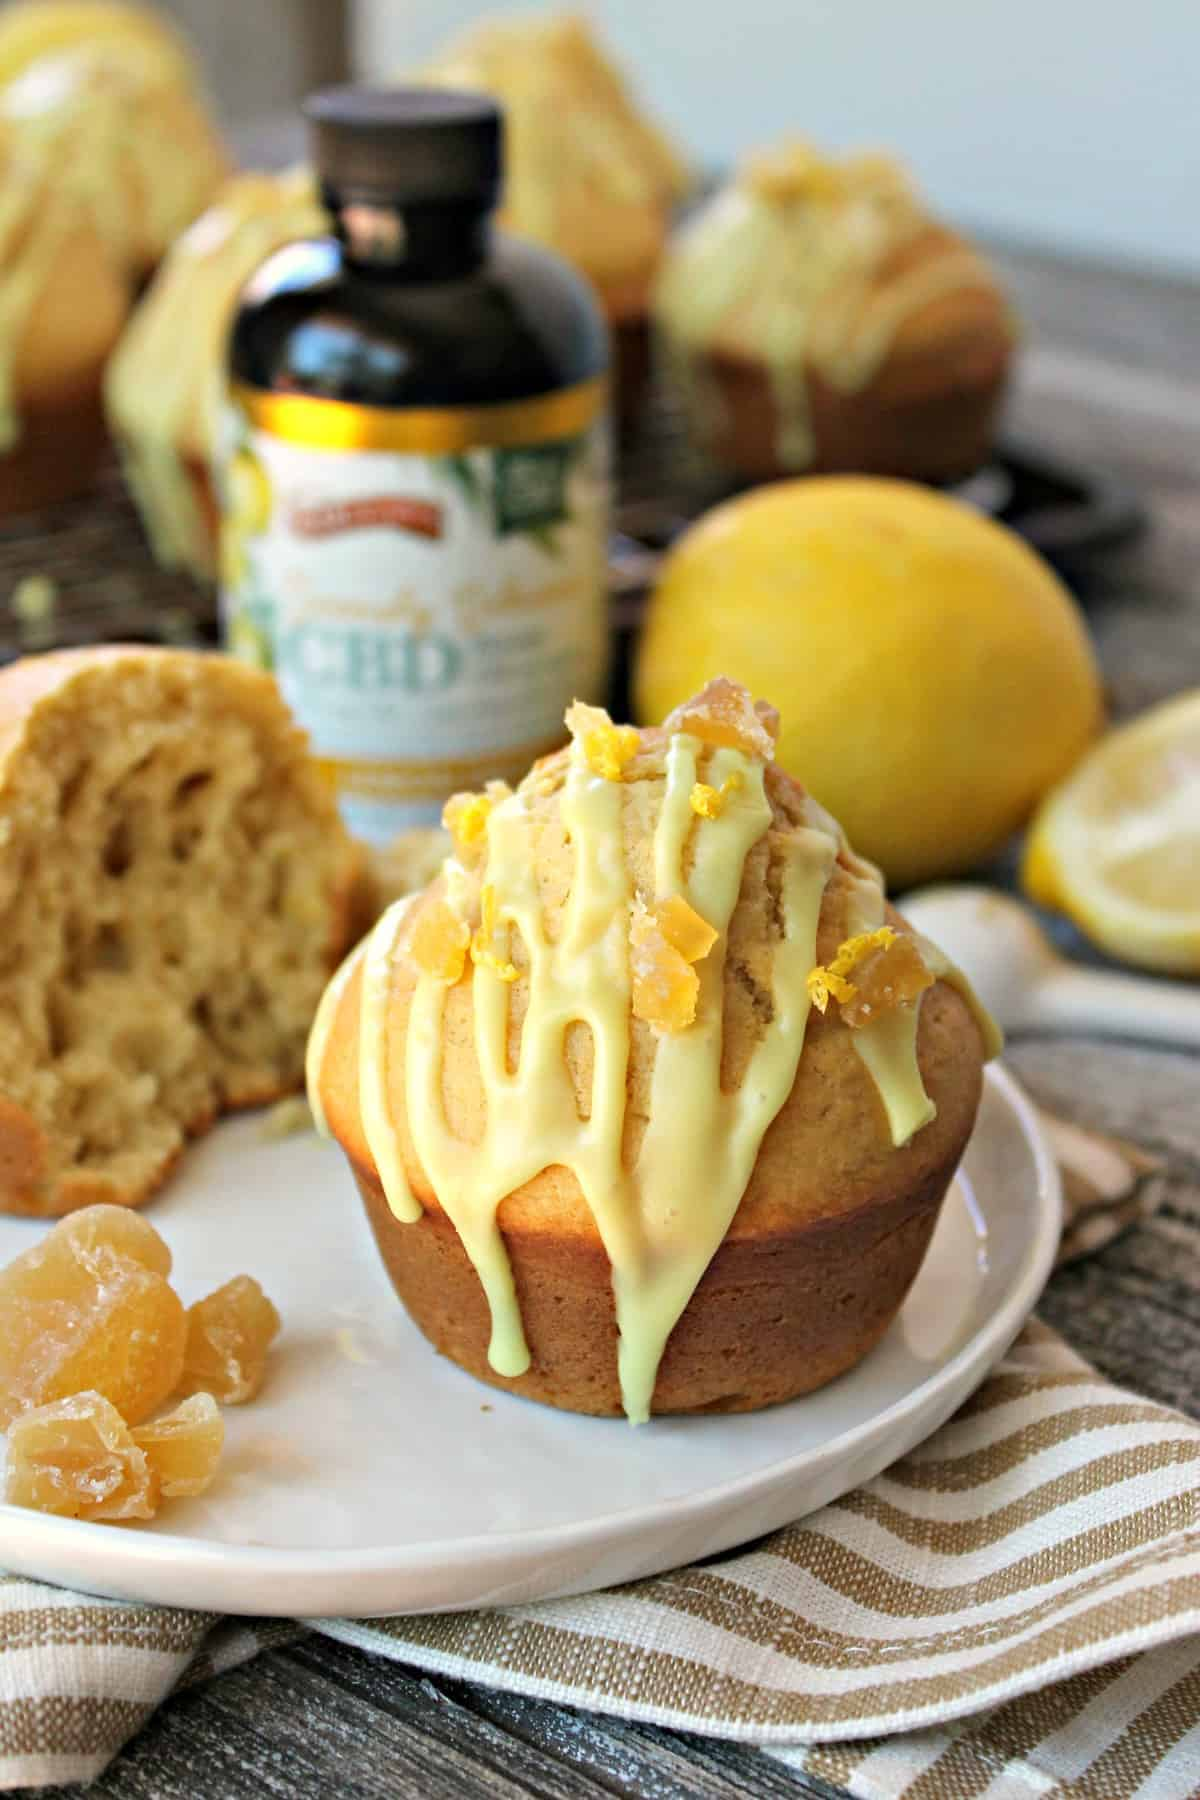 Glazed Lemon-Ginger Muffins! A perfect way to begin the day, these bright and cheerful lemon muffins are amplified by the addition of fragrant ground ginger. A sweet glaze drizzled over top and a sprinkling of candied ginger gives them a delicious finishing touch!